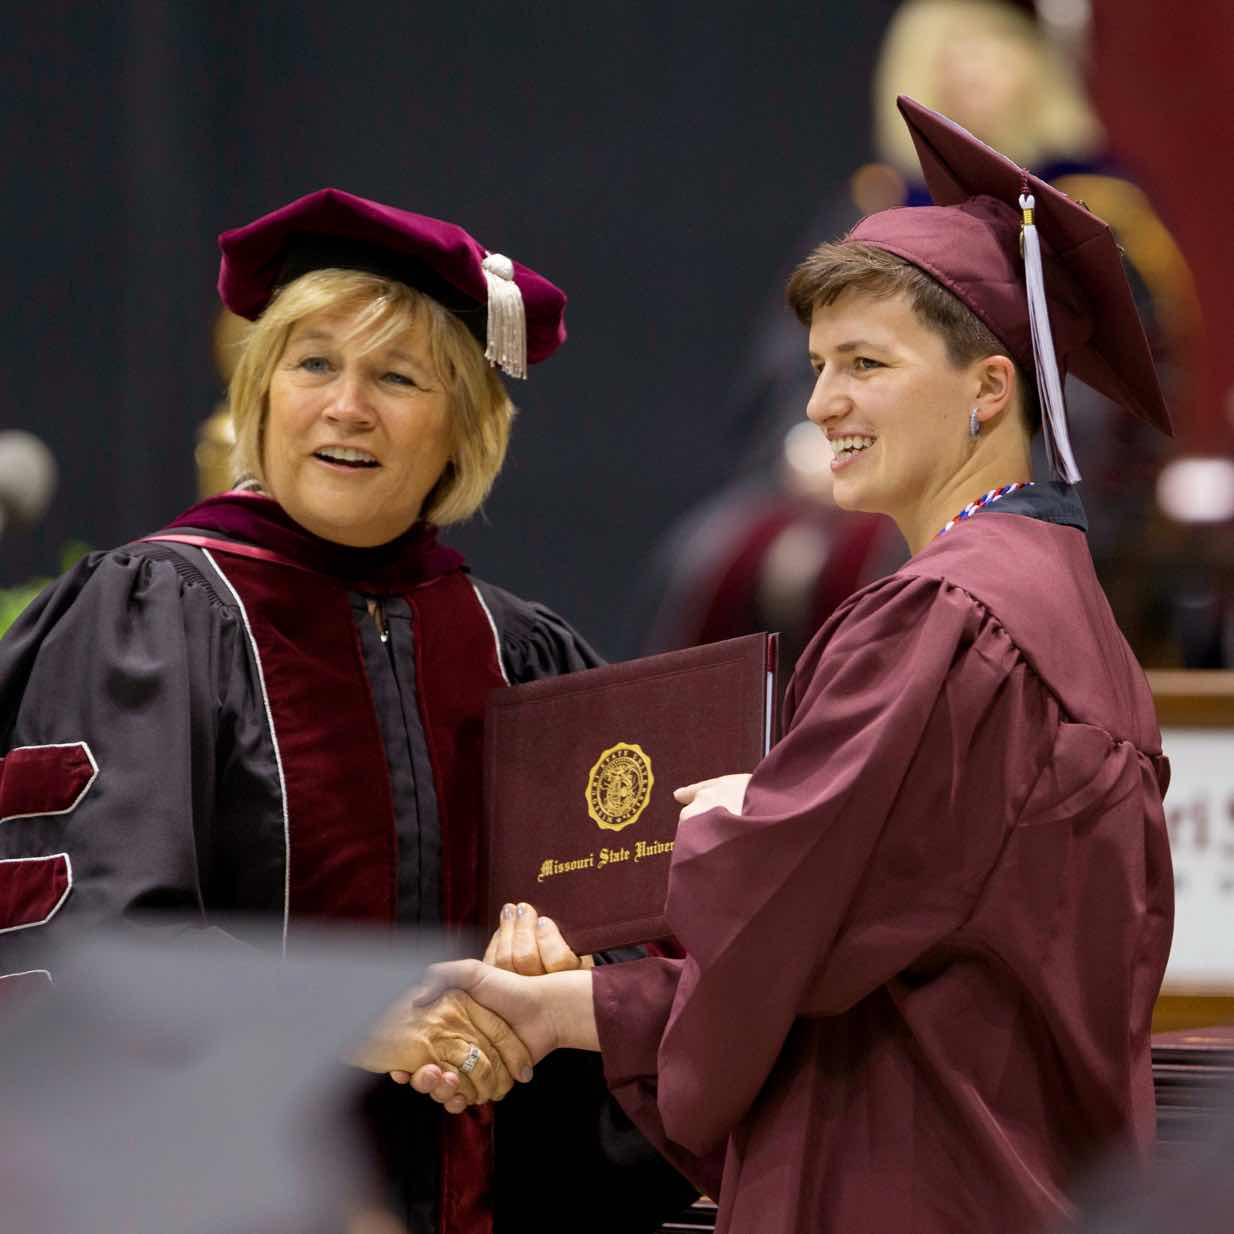 Graduating student shakes hand with Board of Governors member while accepting diploma.